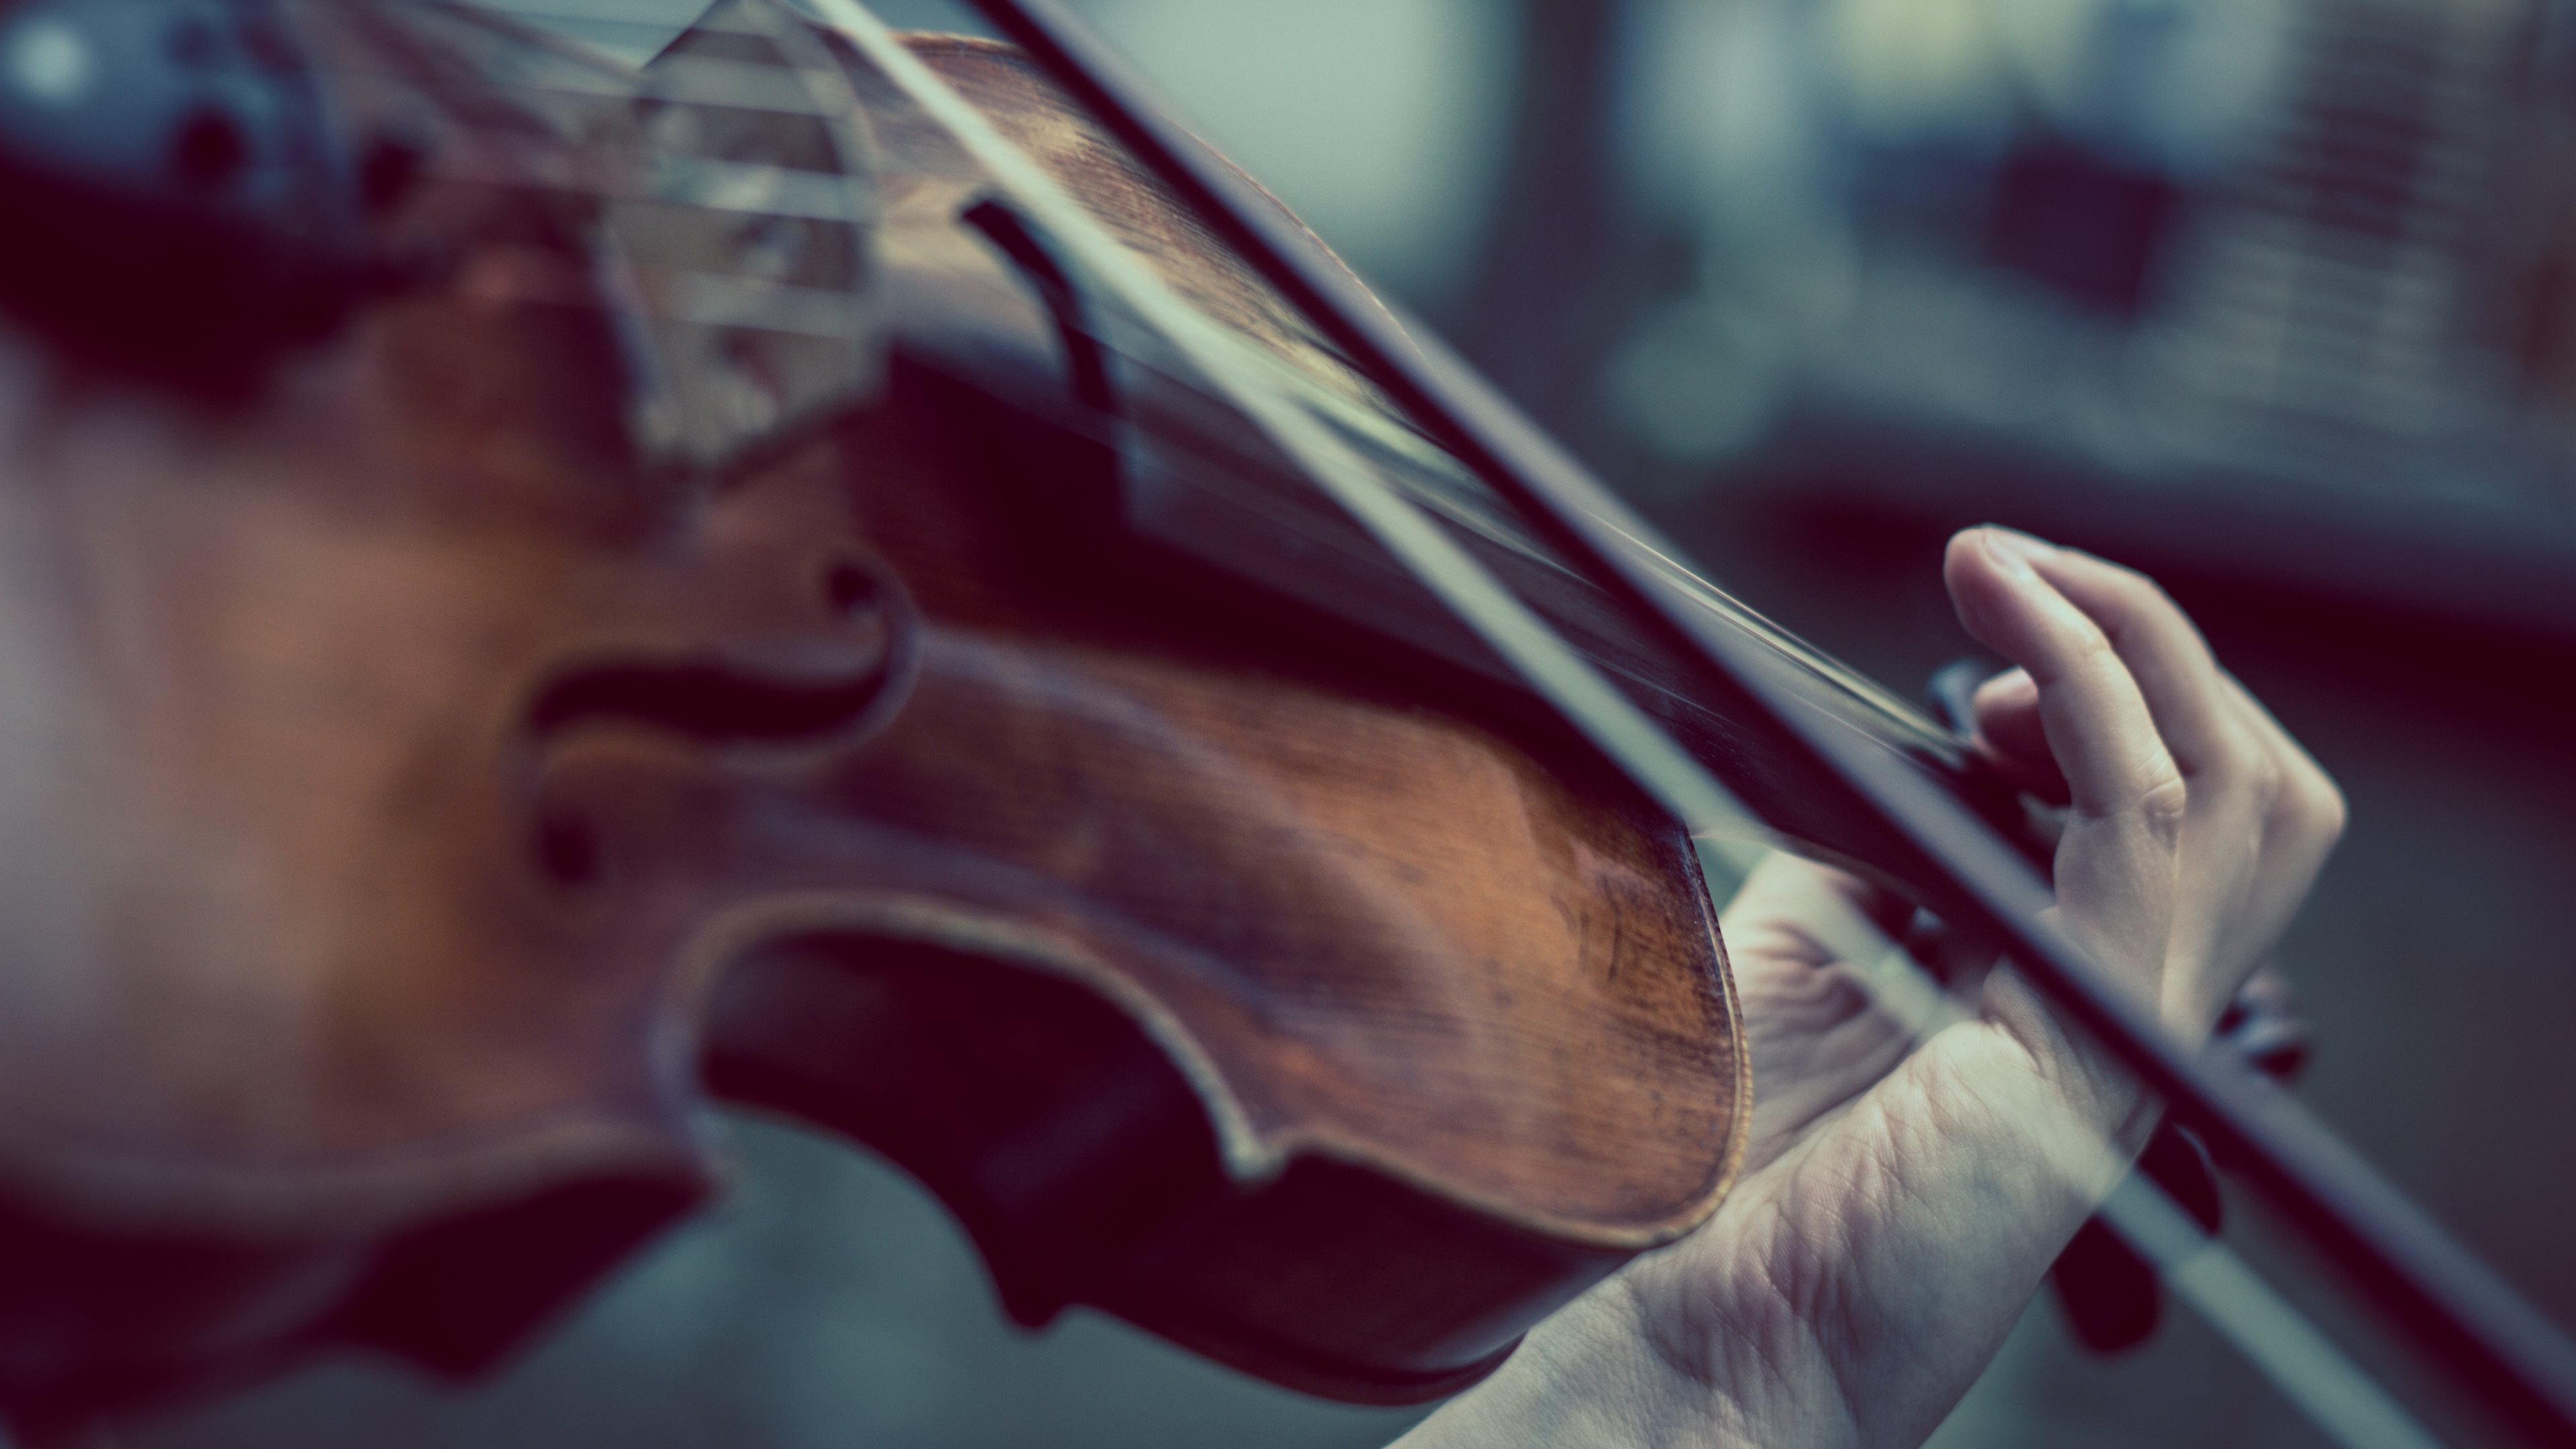 Playing violinist, violin, music, photographing, hands